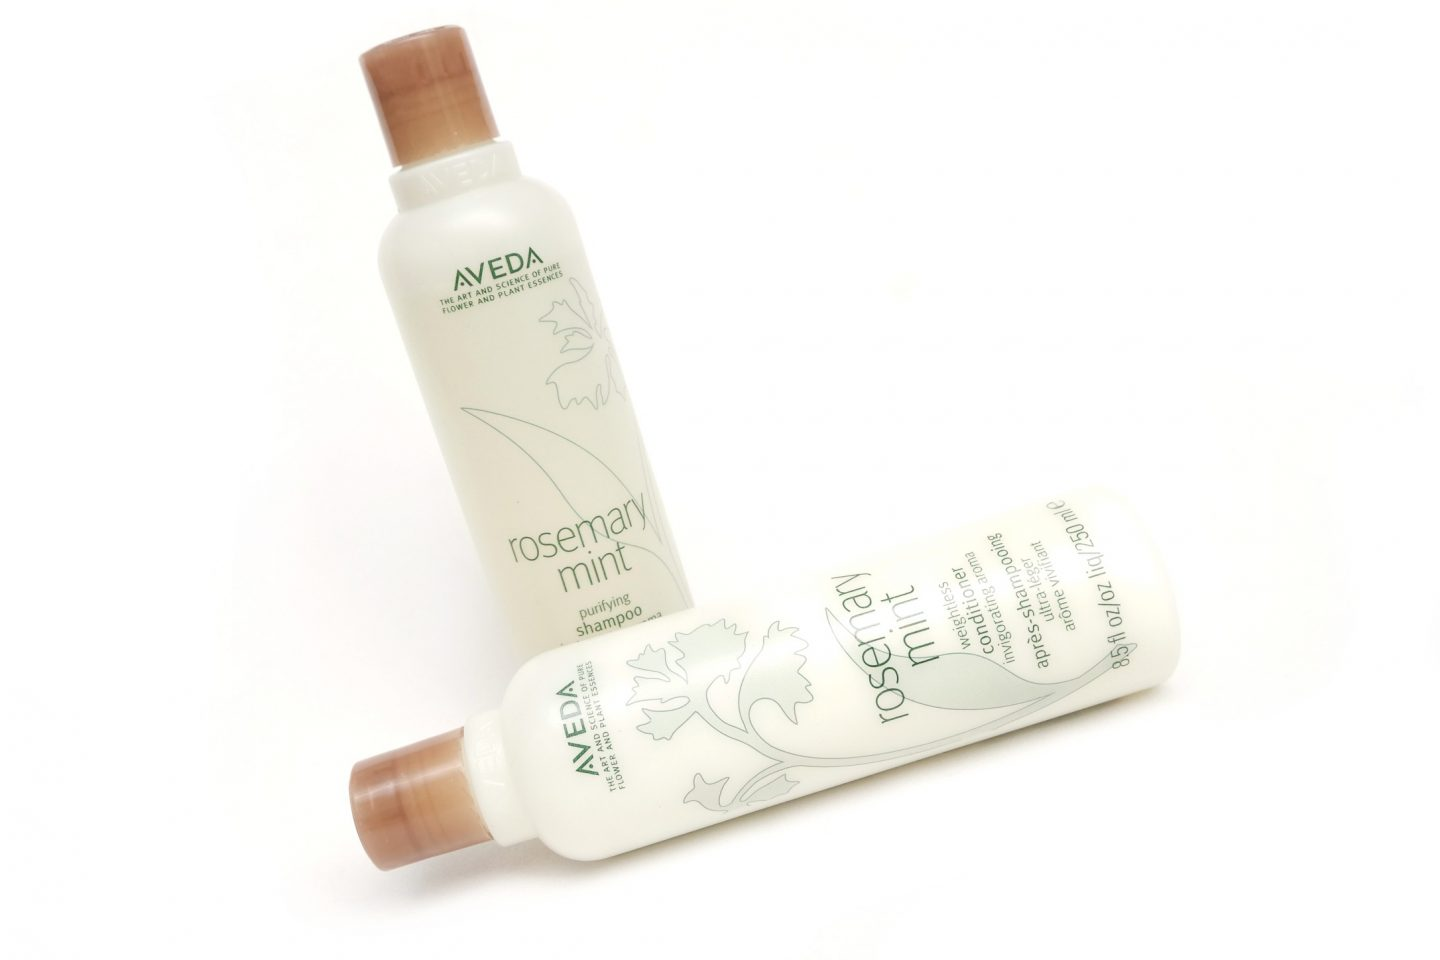 Aveda Rosemary Mint Hair Products Review